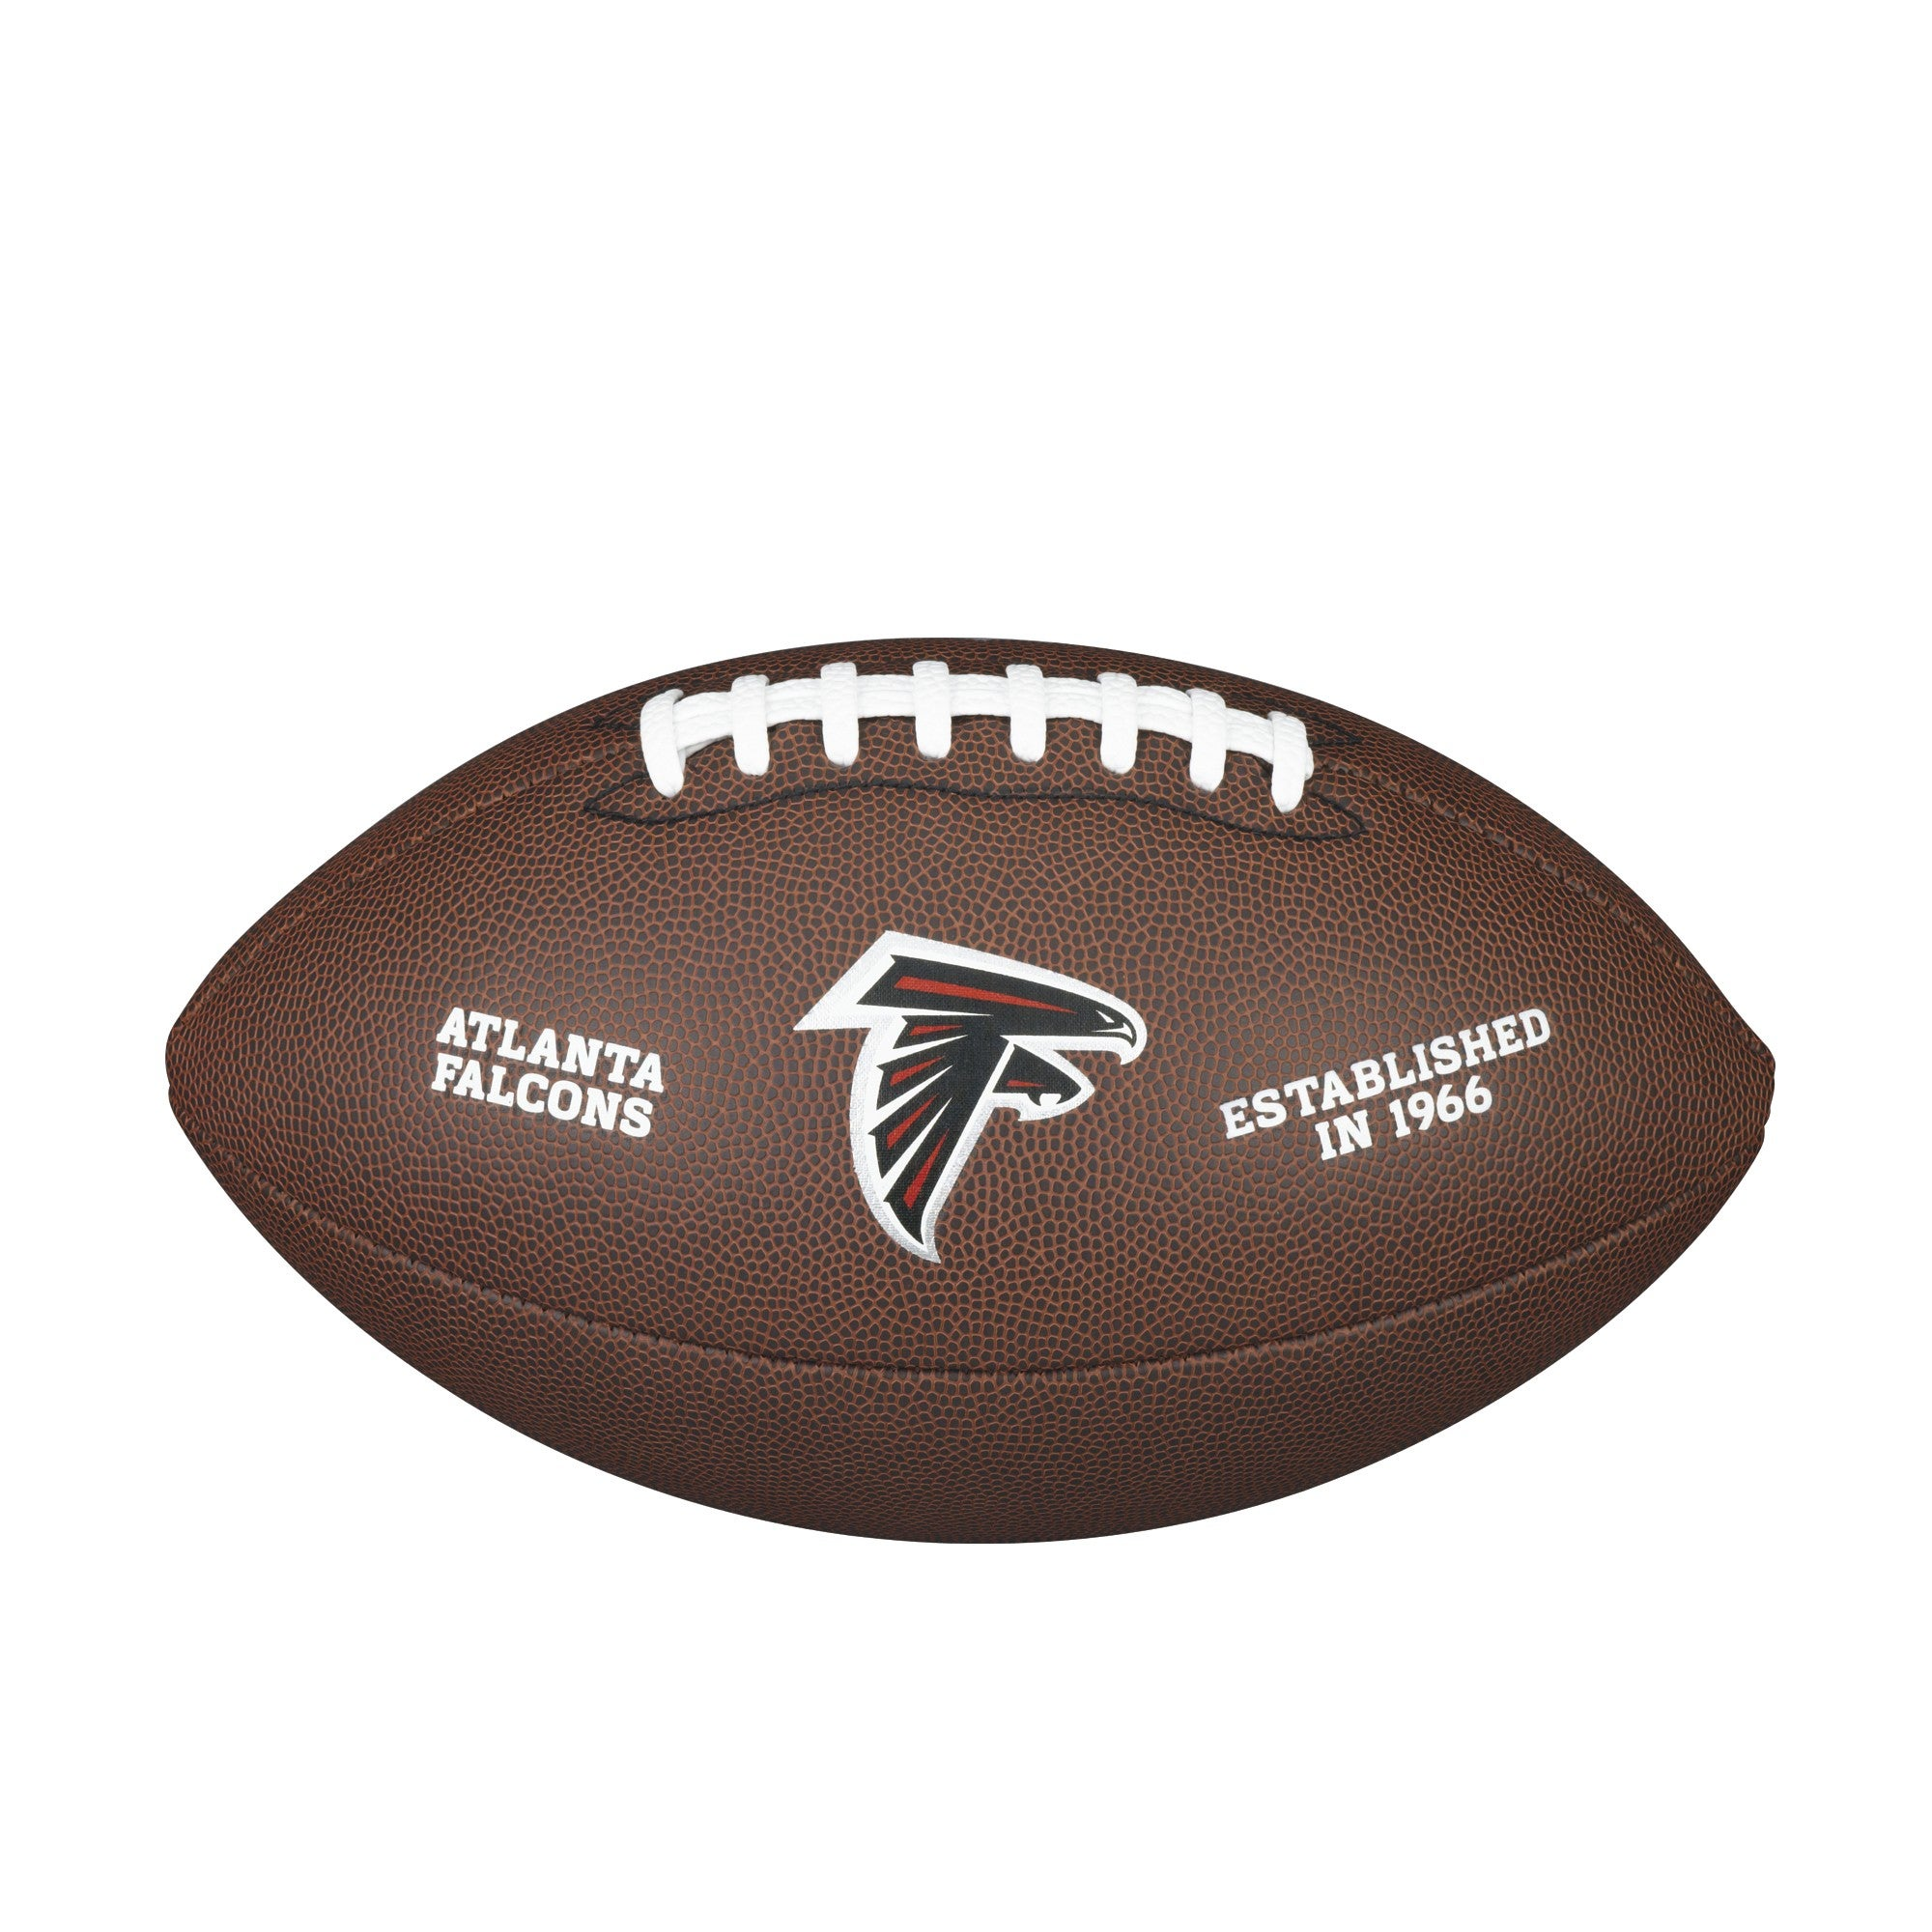 NFL TEAM LOGO COMPOSITE FOOTBALL - OFFICIAL, ATLANTA FALCONS